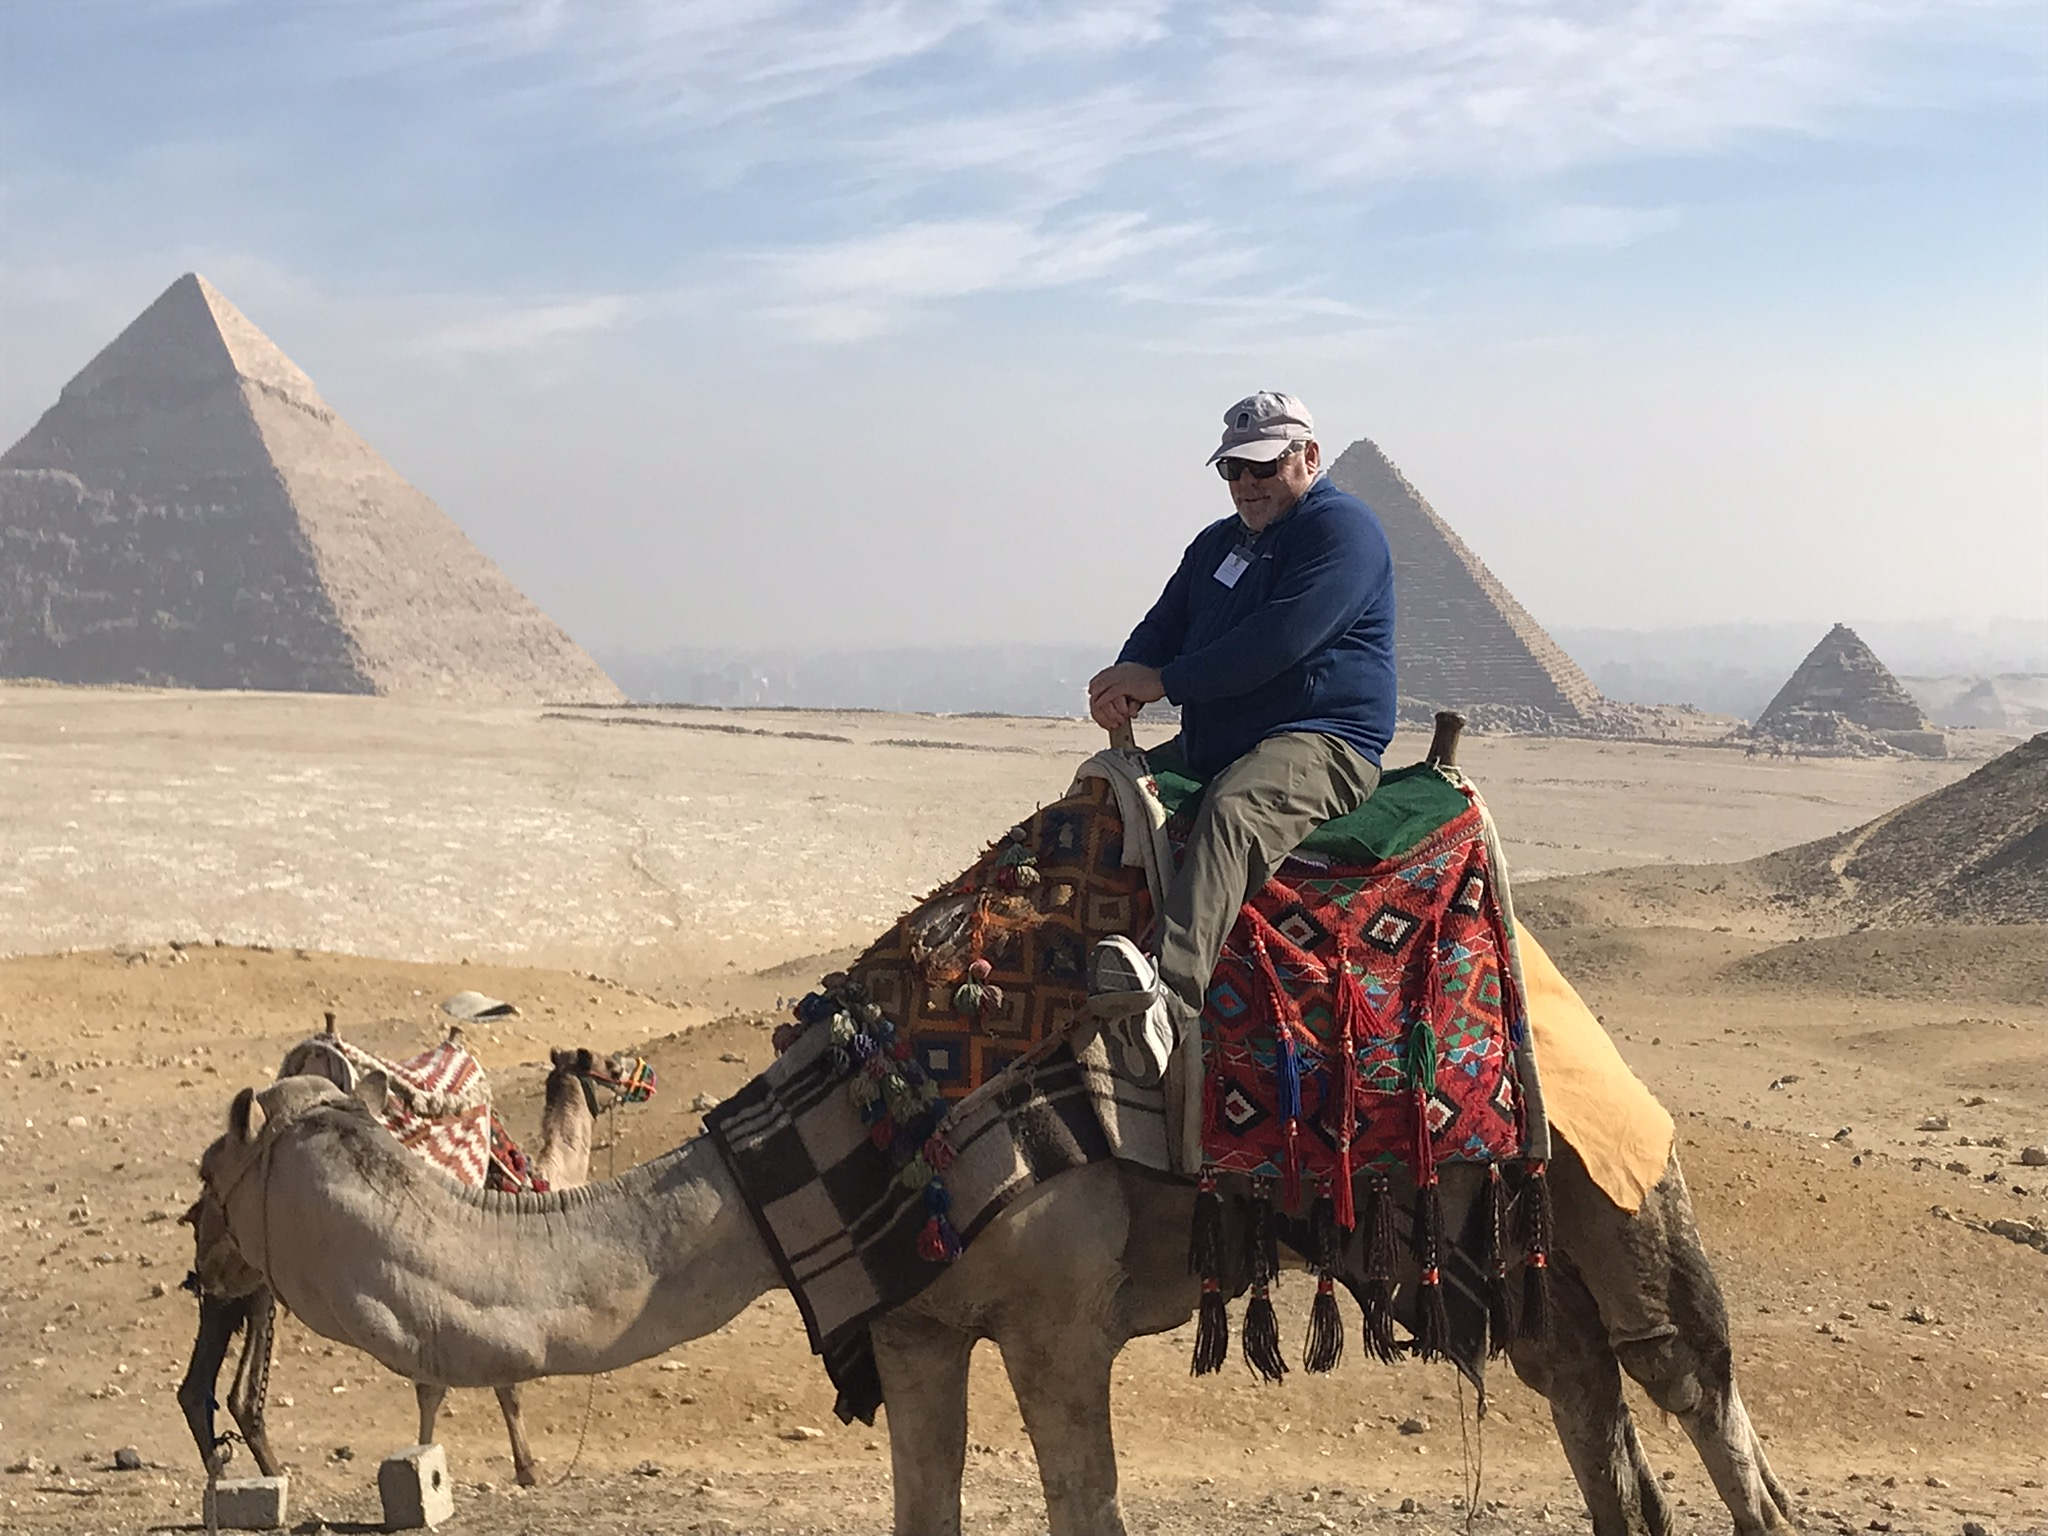 Camal Rides at the Great Pyramid